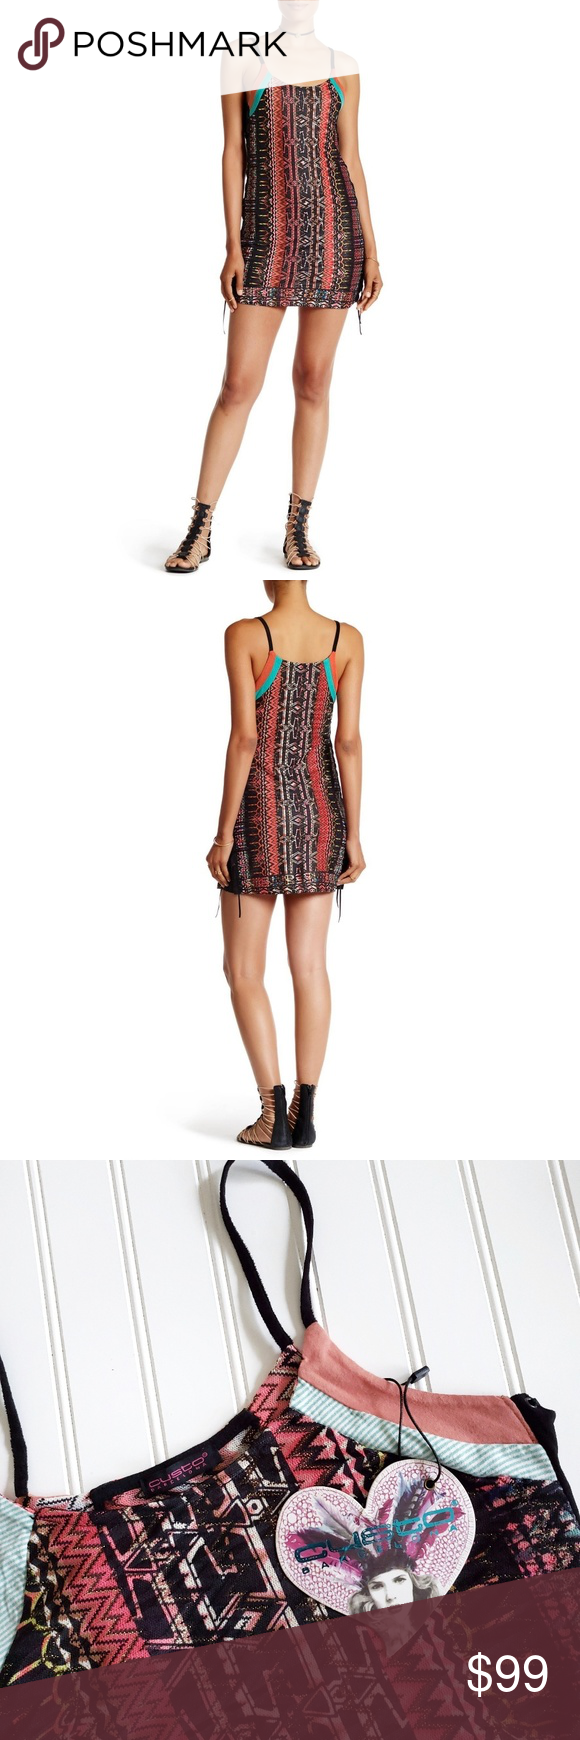 CUSTO BARCELONA Sassy Hahei laceup boho mini dress Custo Barcelona fitted boho mini dress  New with tag Style: Sassy Hahei Size: Small Color: multi Polyester / Cotton slips on overhead scoop neck spaghetti straps sheer patterned knit construction metallic accents side lace-up detail which can be tightened or loosened  Approximate Measurements Length (top of strap to hem) 32